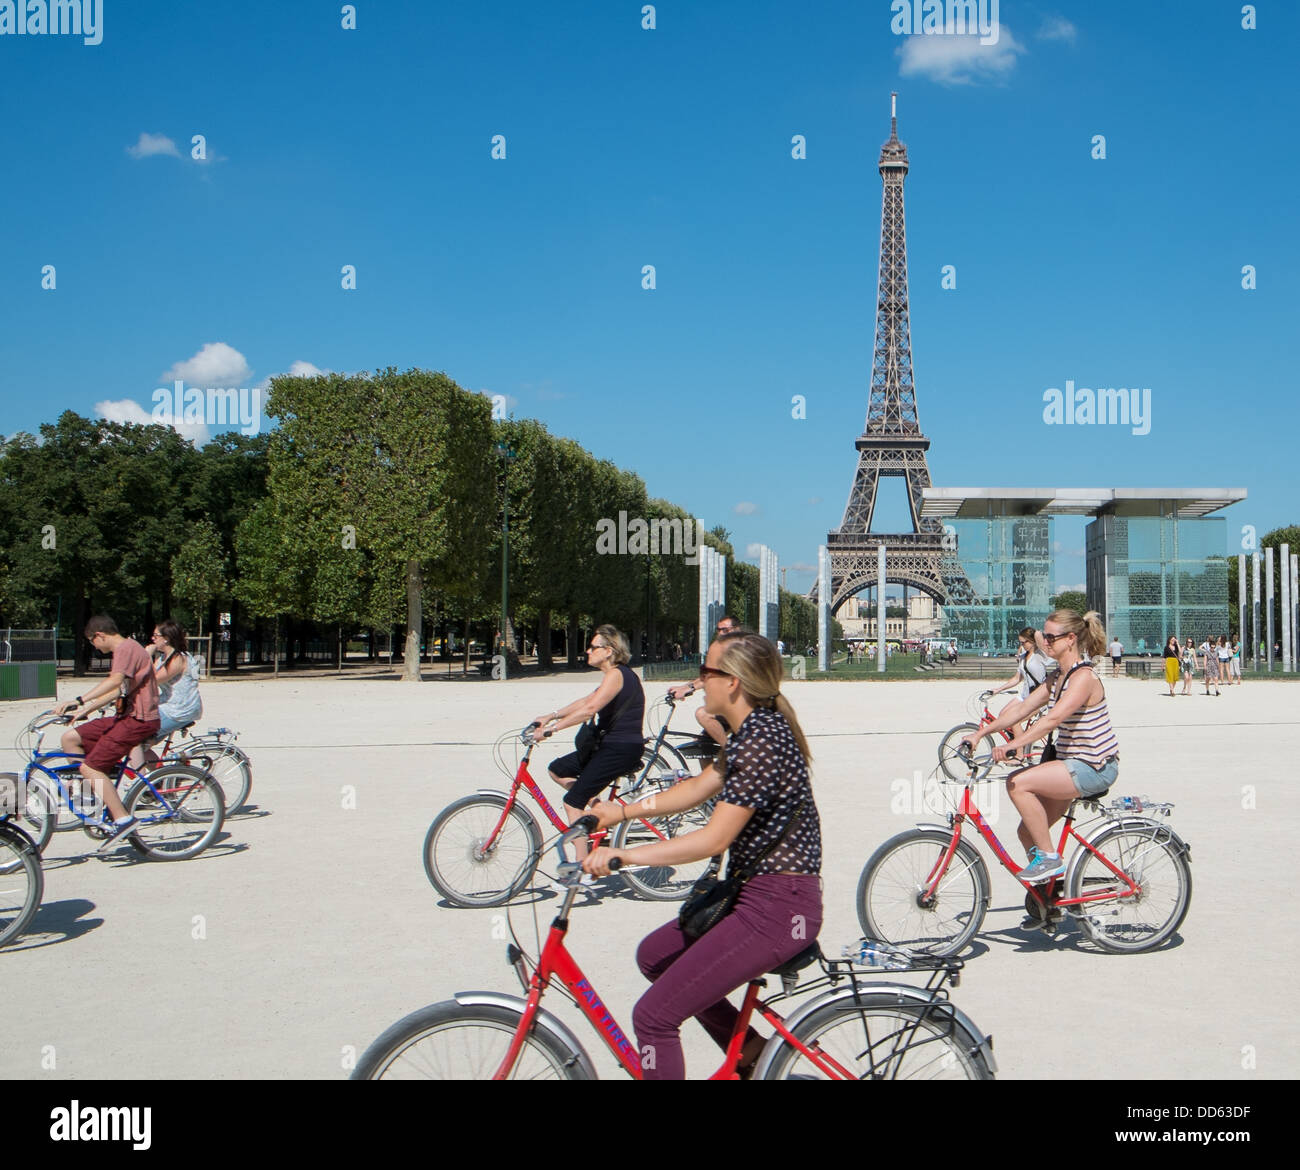 Bikers on the Champ de Mars by the Eiffel Tower in Paris France. - Stock Image